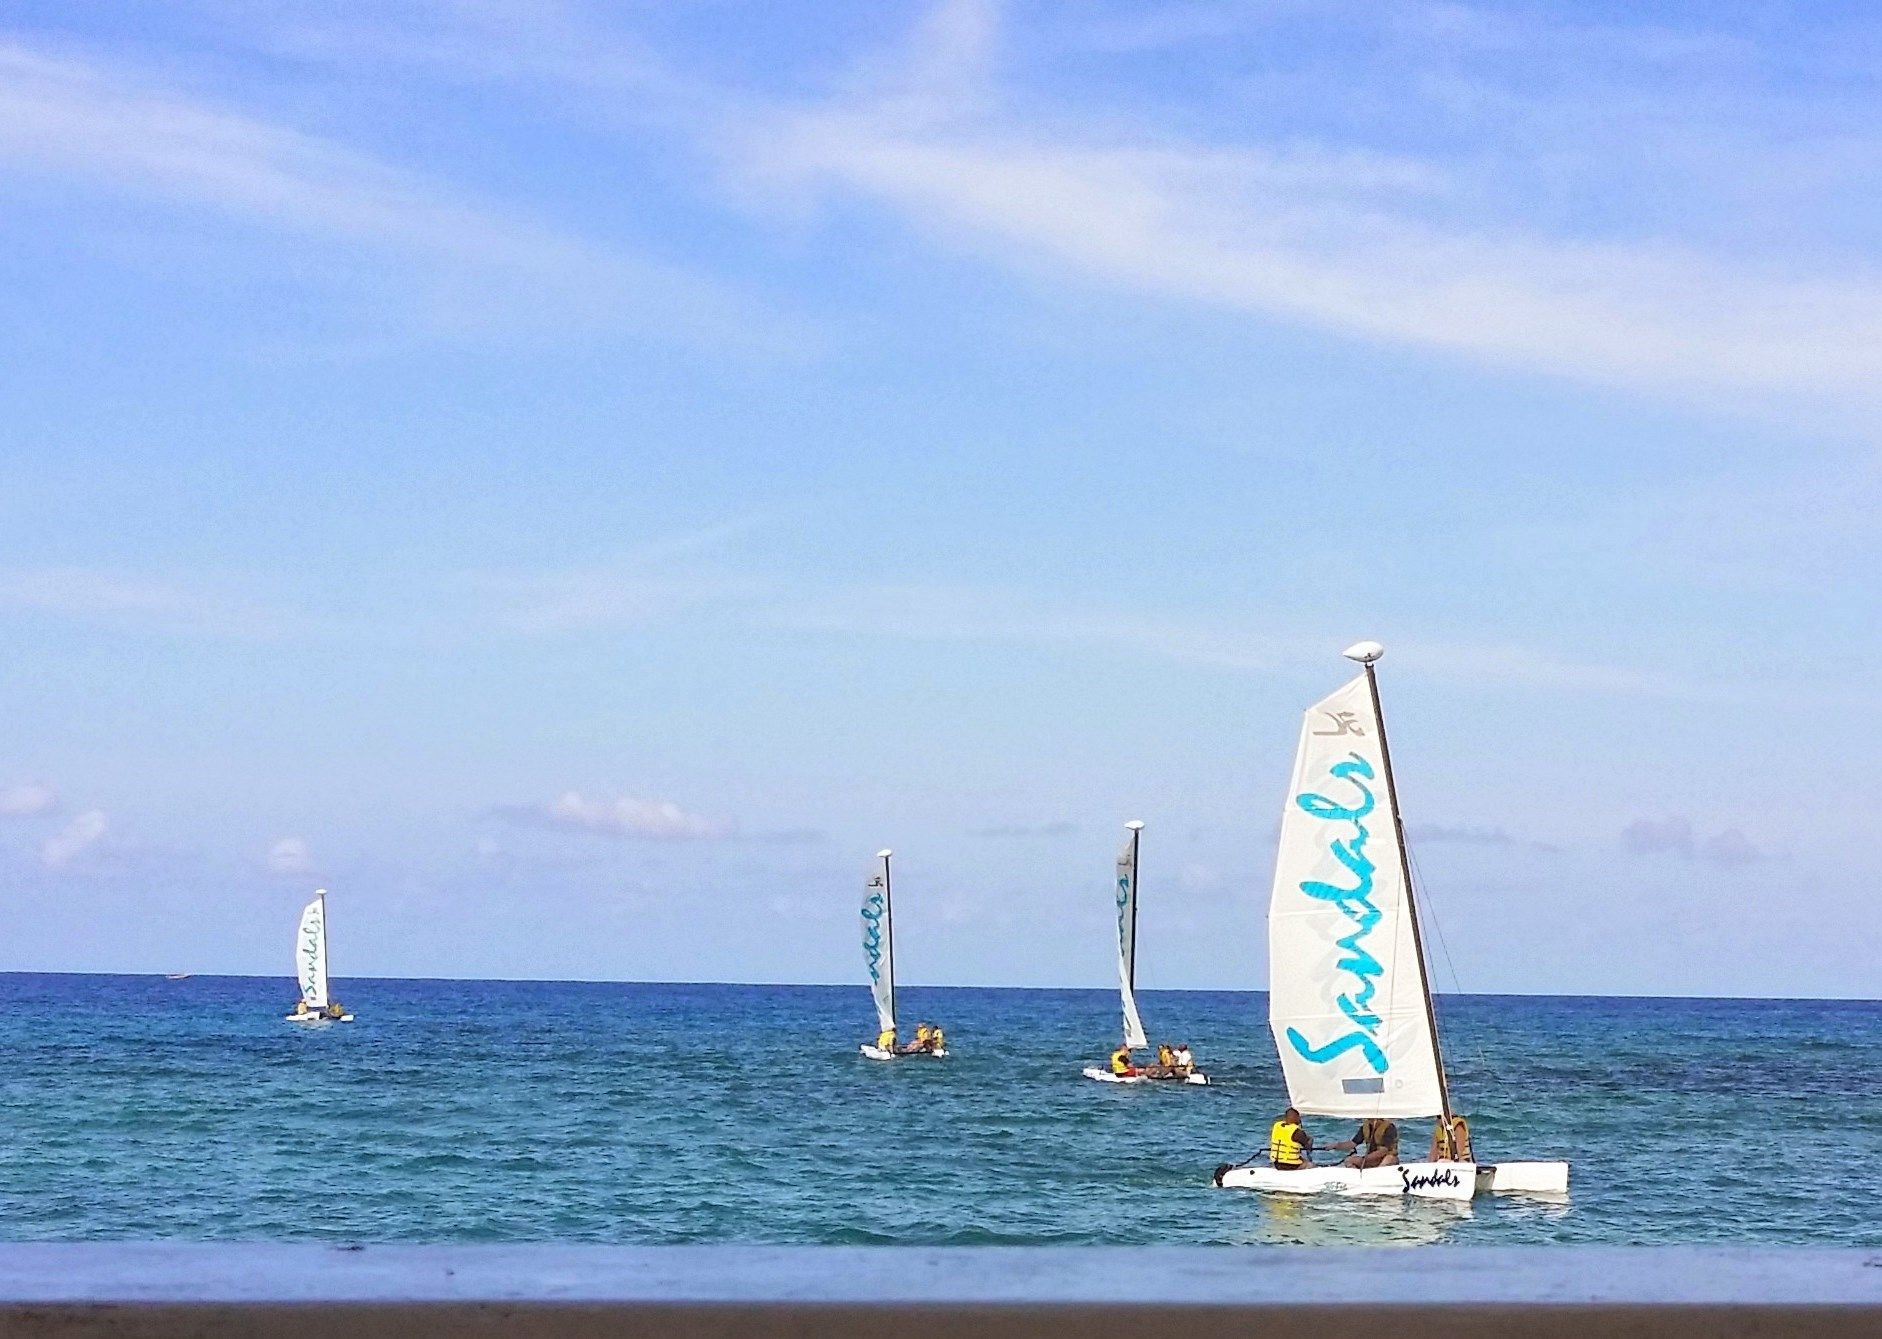 Have you ever wanted to sail the Caribbean? What's stopping you?